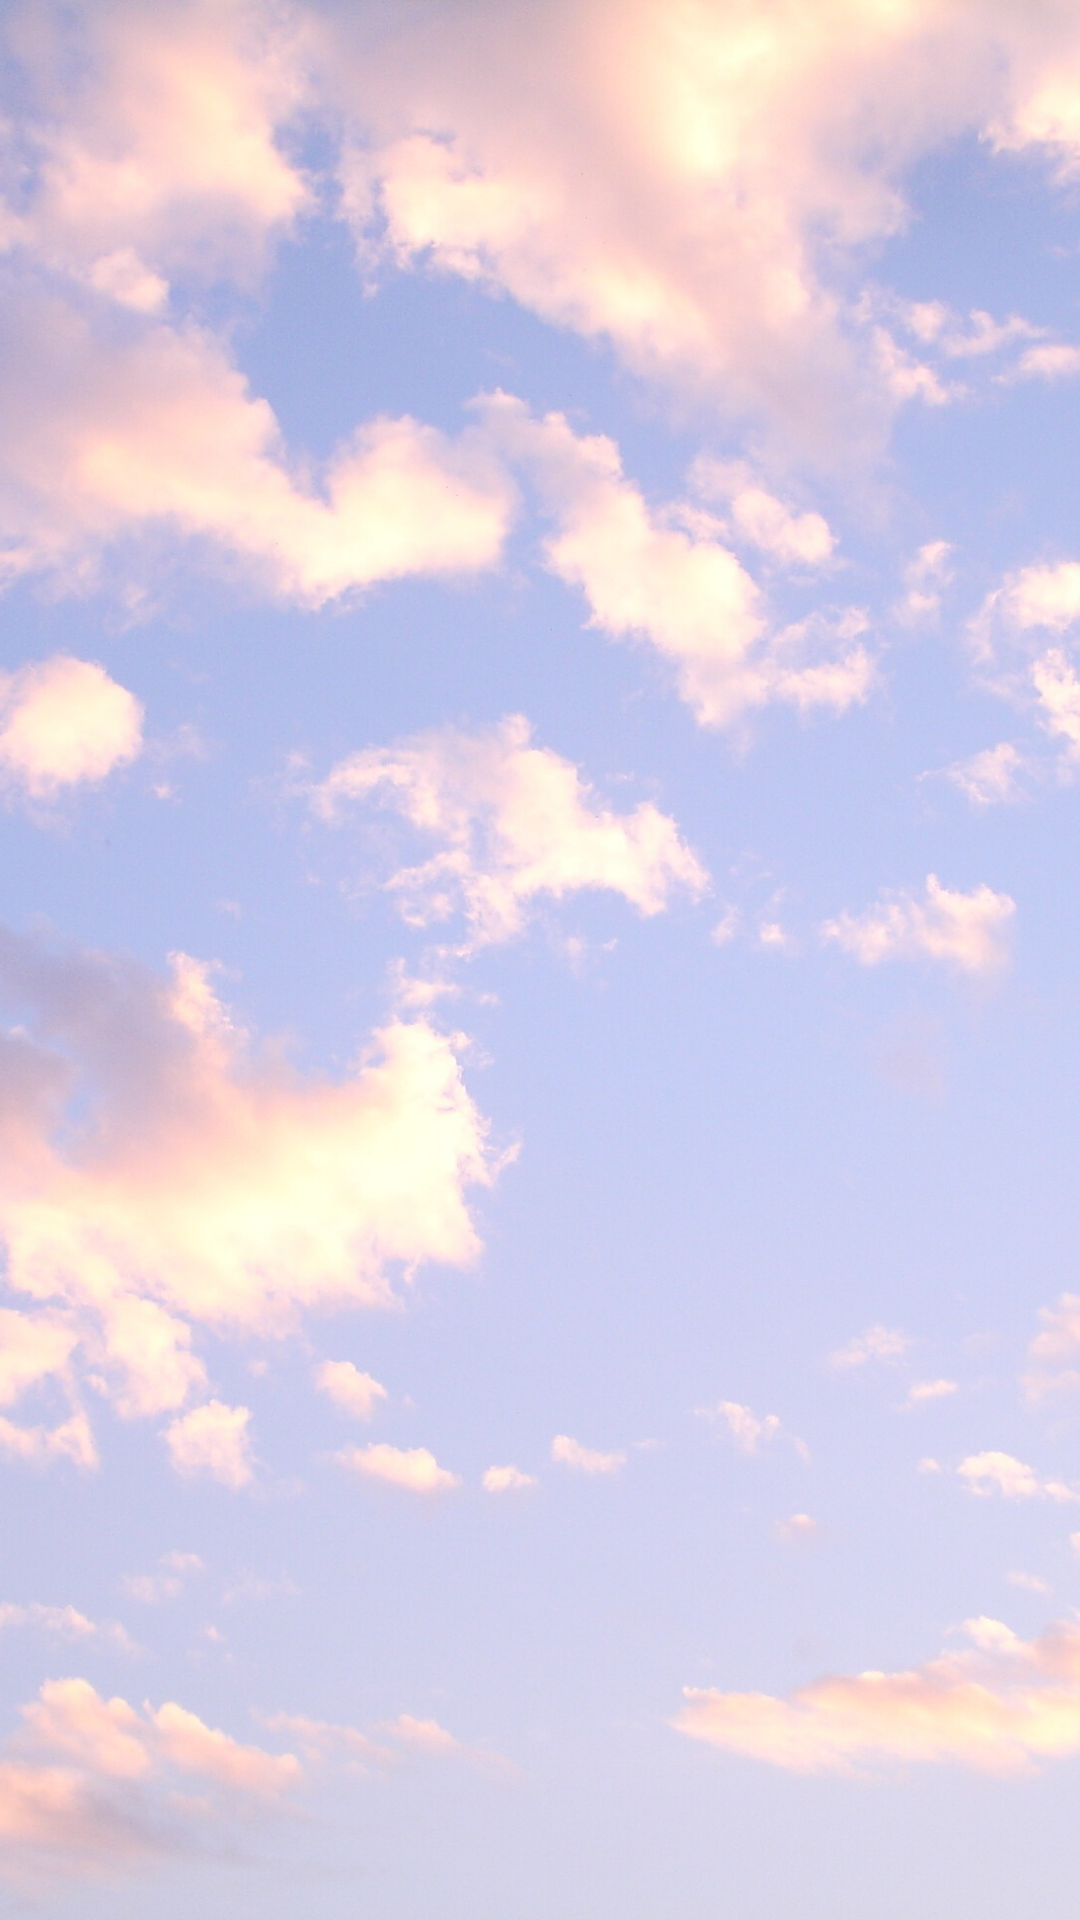 Cloudy Day Dreams Co in 2020 Aesthetic backgrounds, Sky